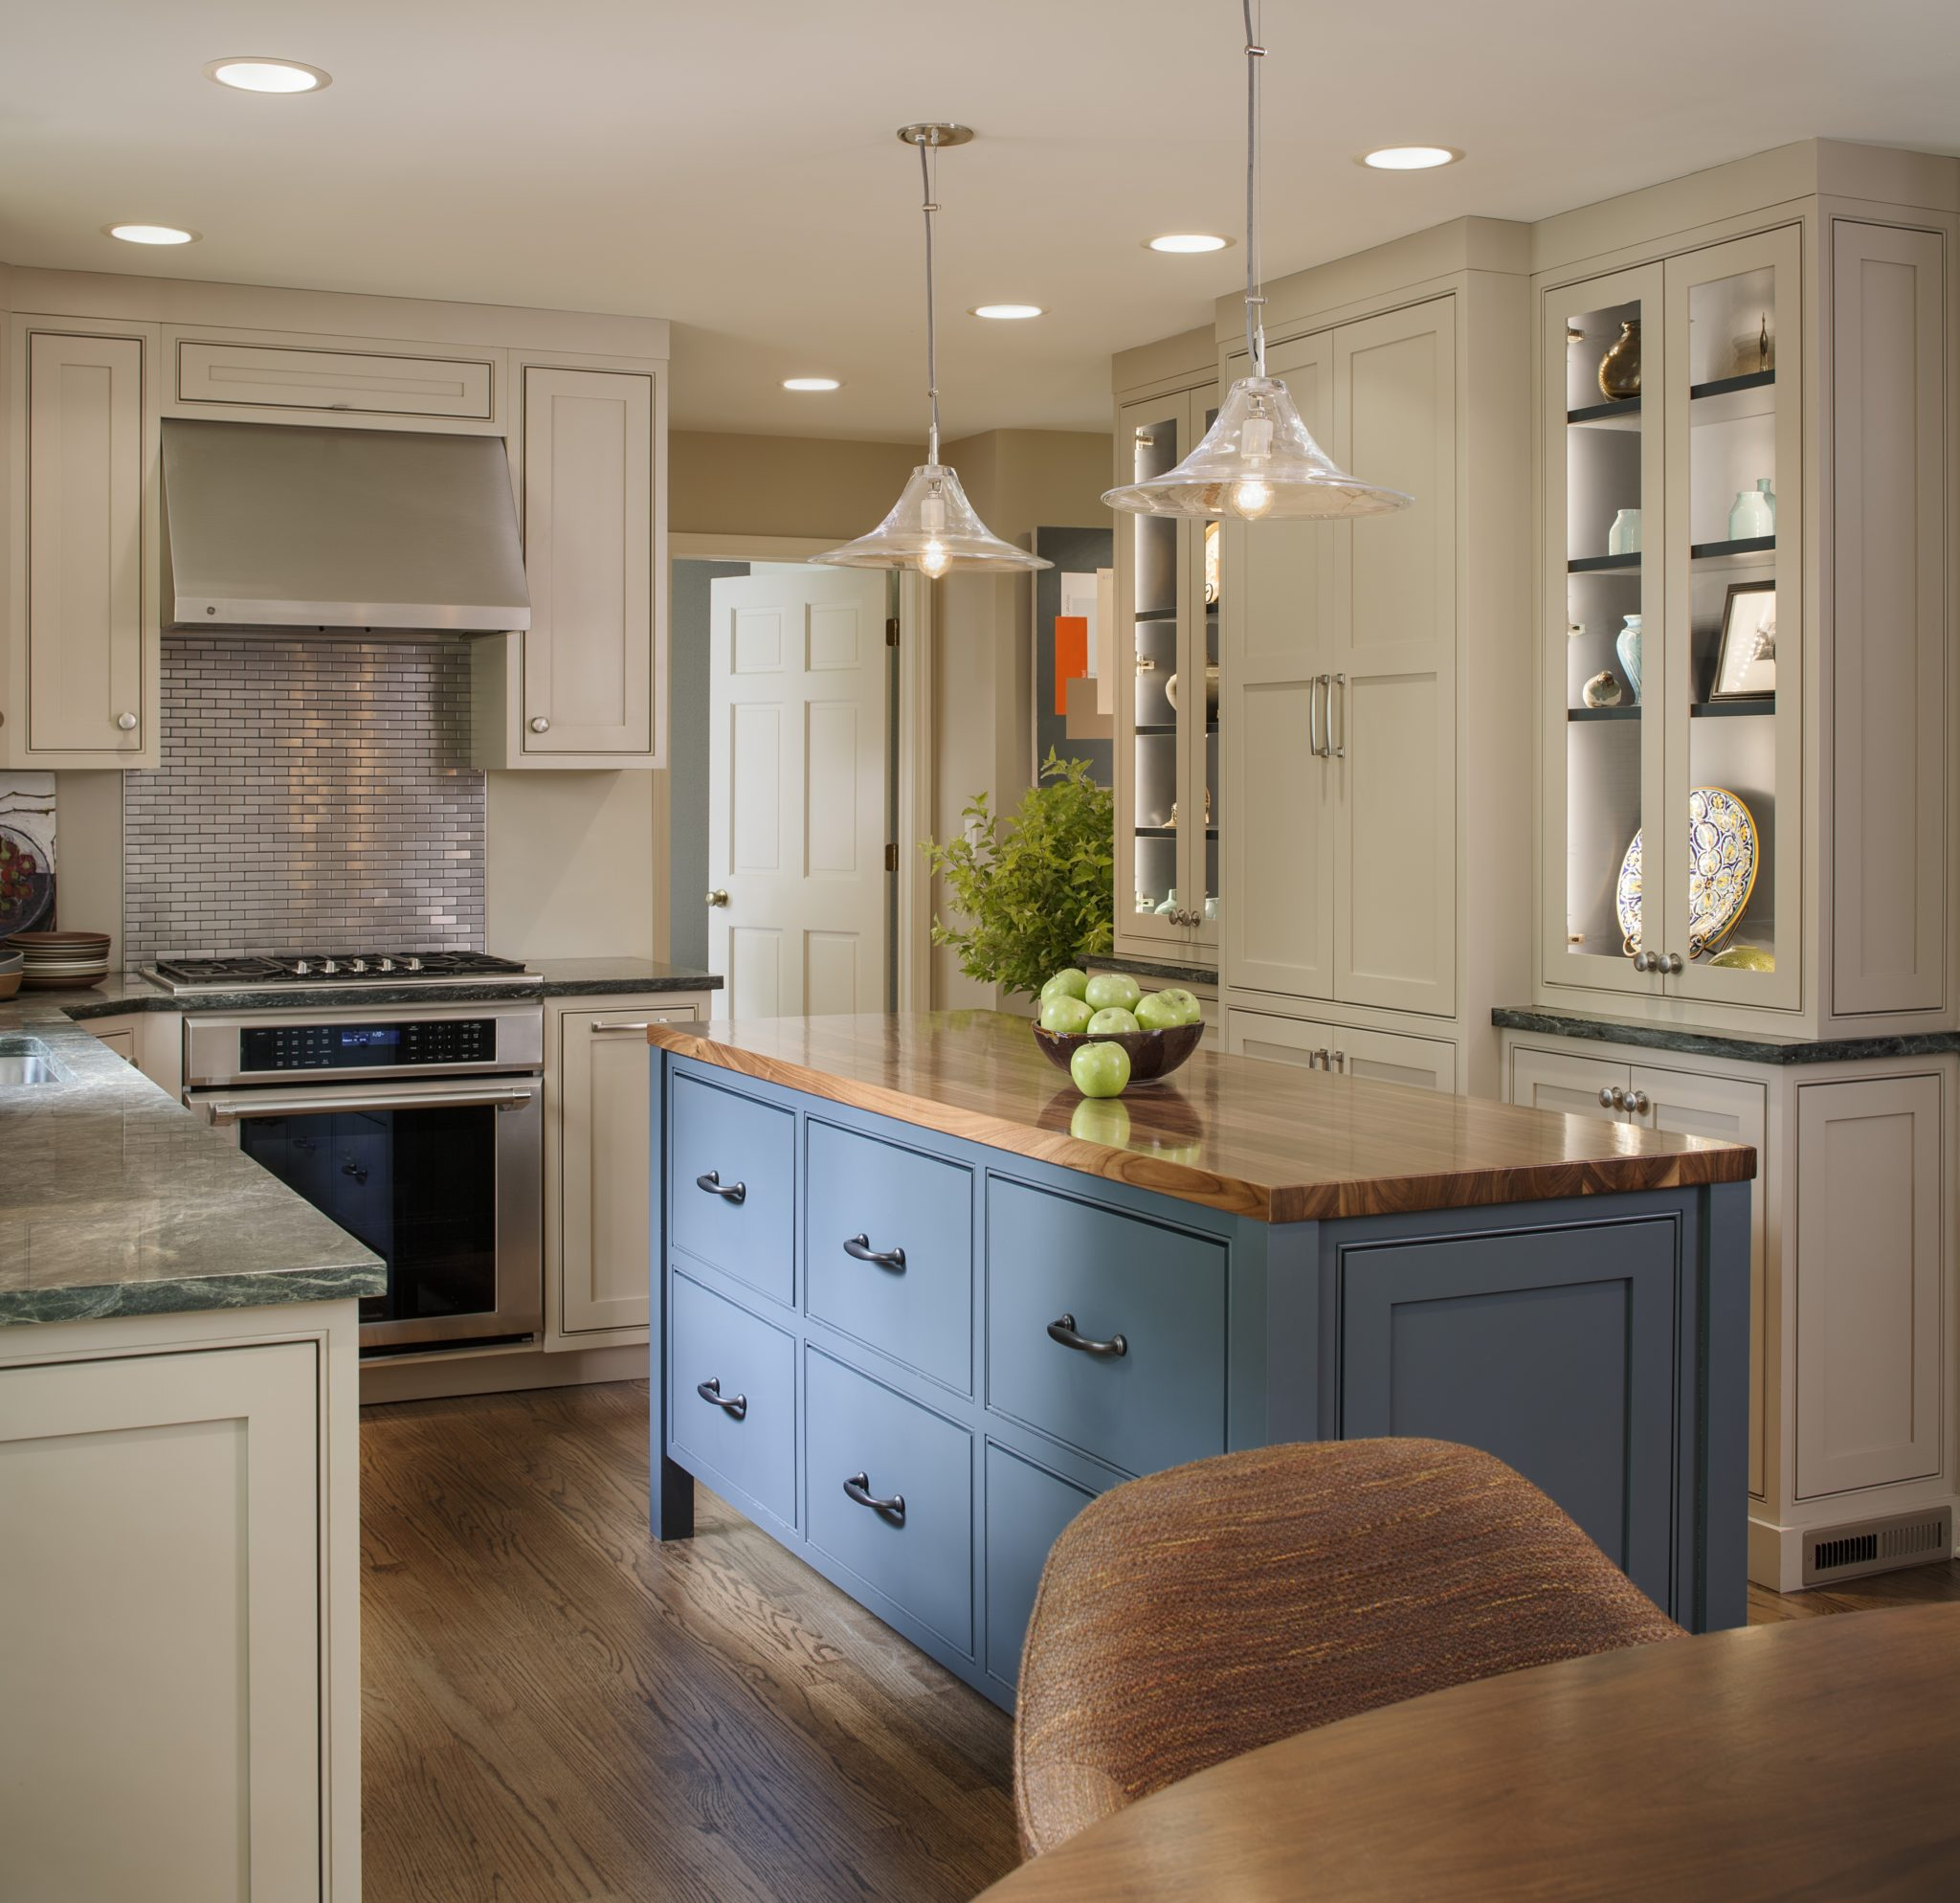 Suburban Chicago residence - kitchen by RJA Design Inc.